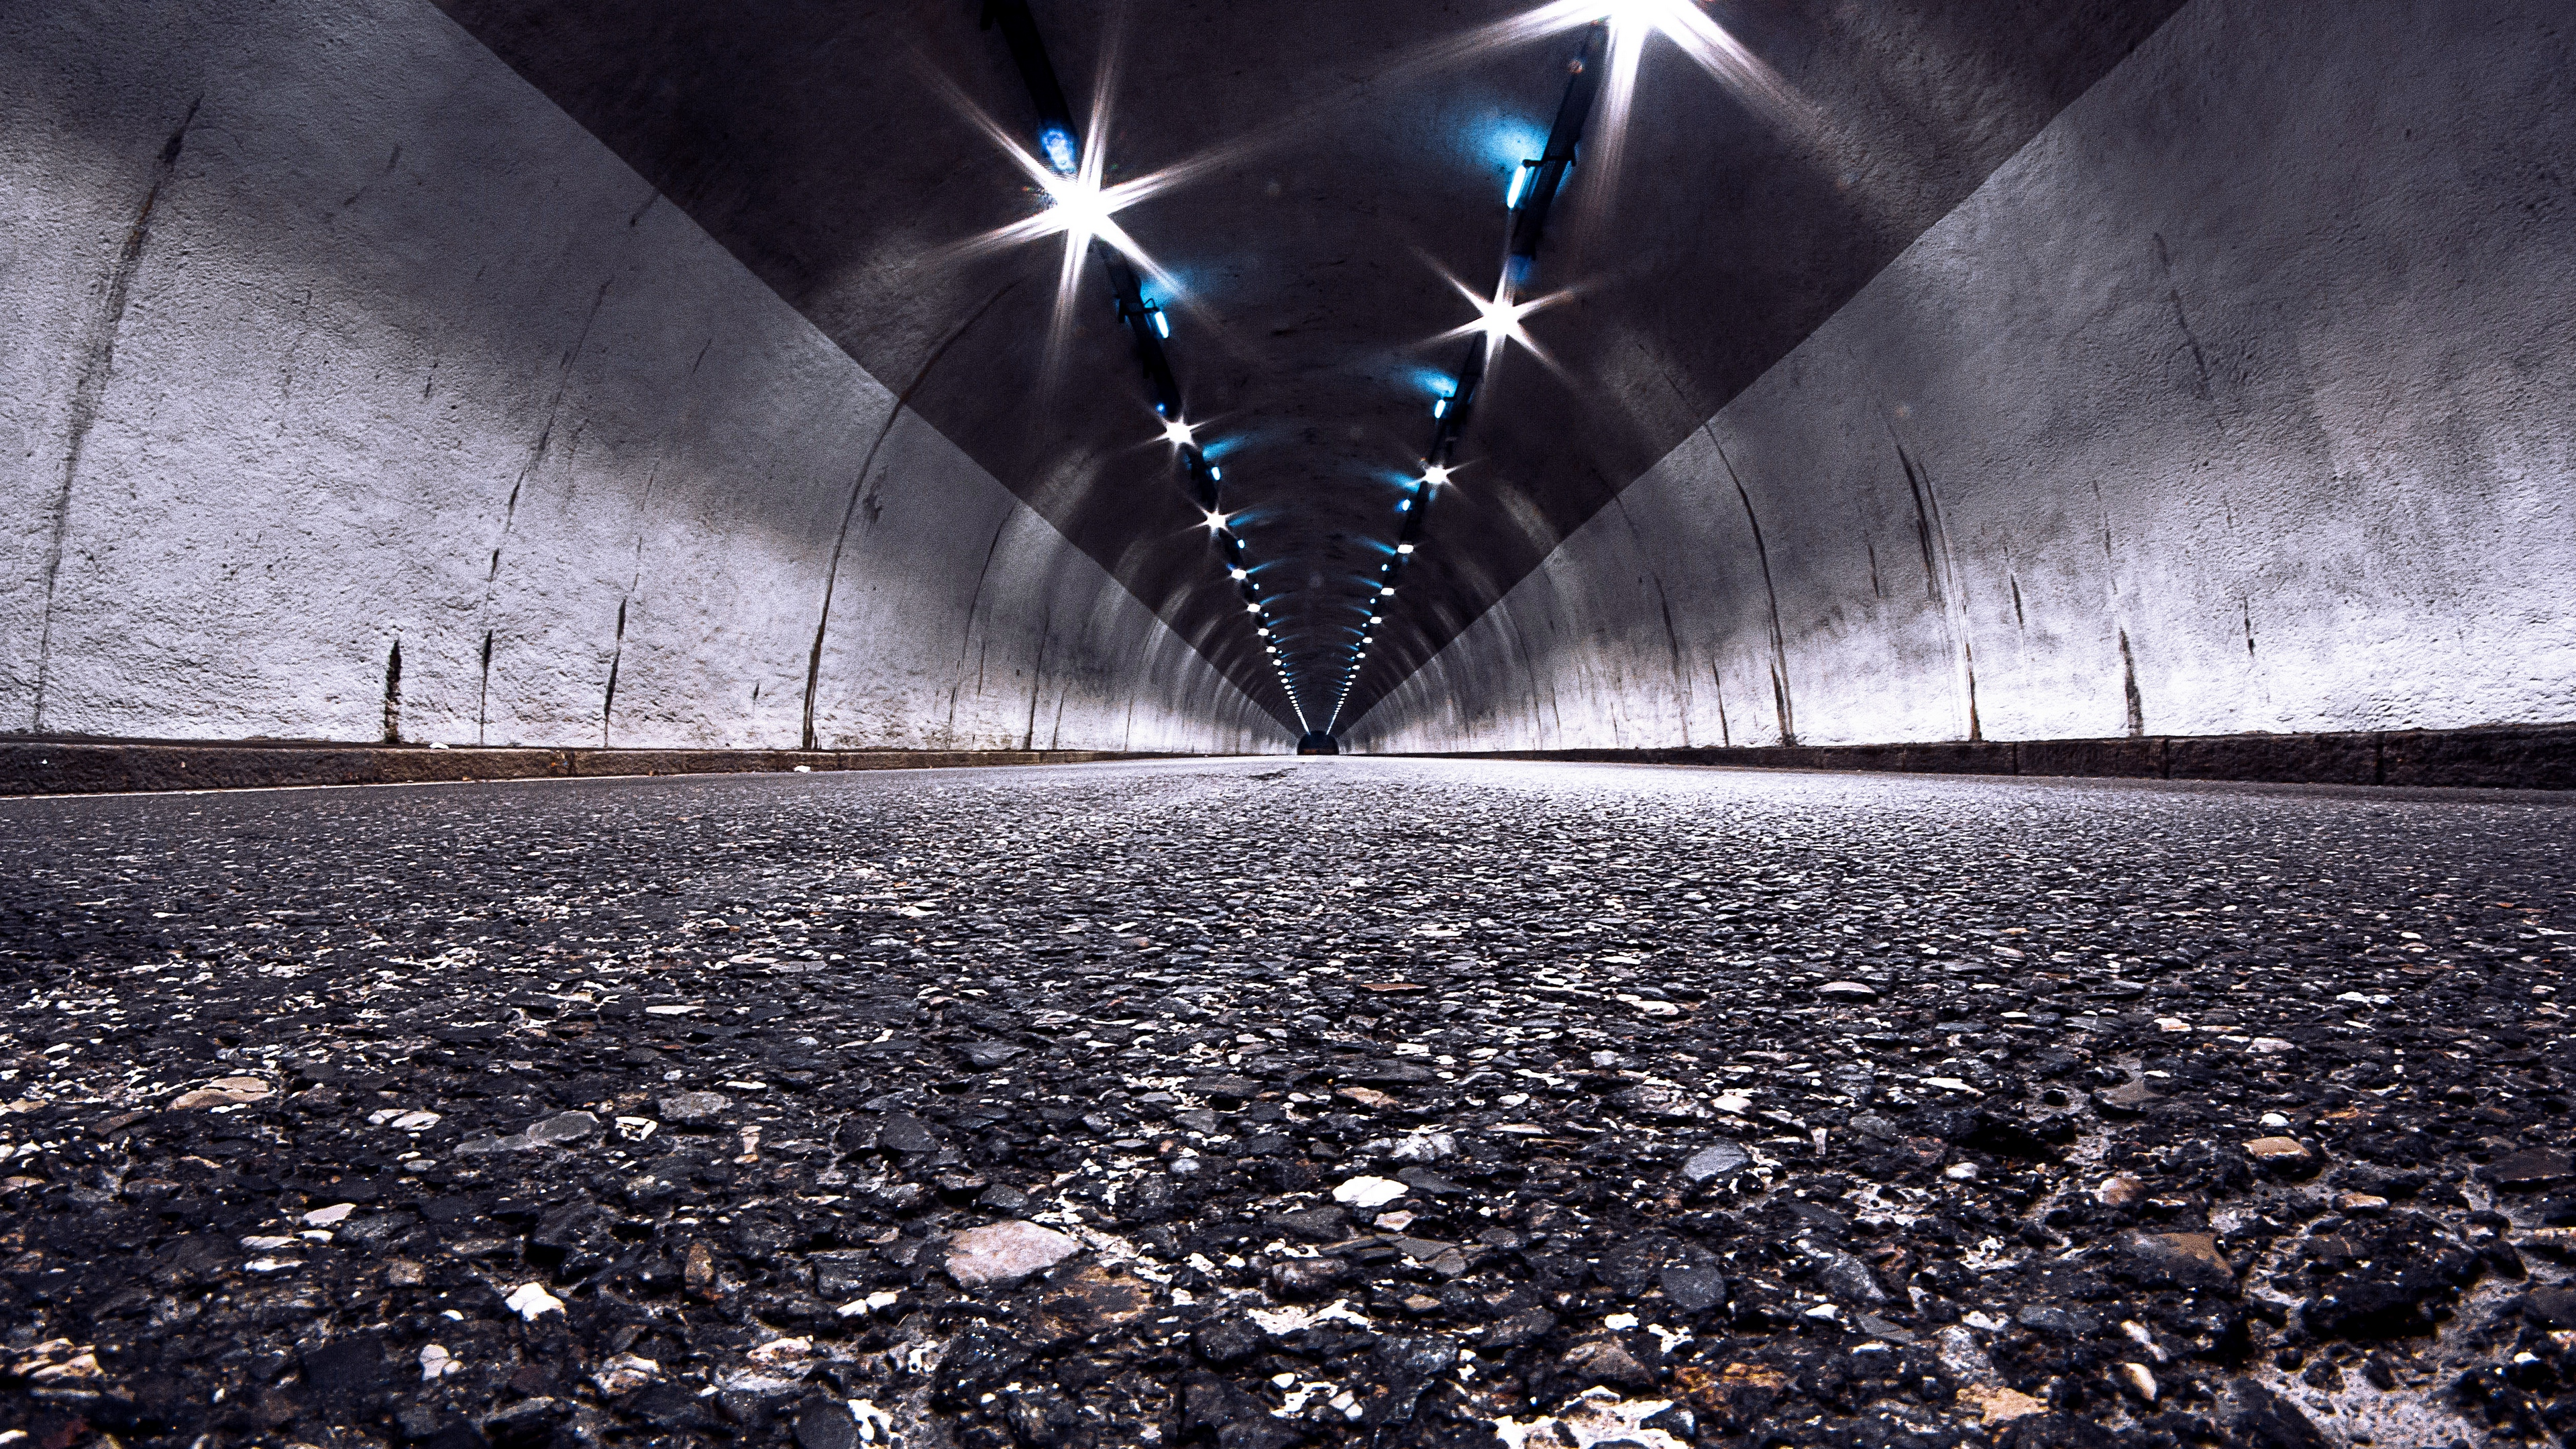 road tunnel night 4k 1538067548 - road, tunnel, night 4k - Tunnel, Road, Night